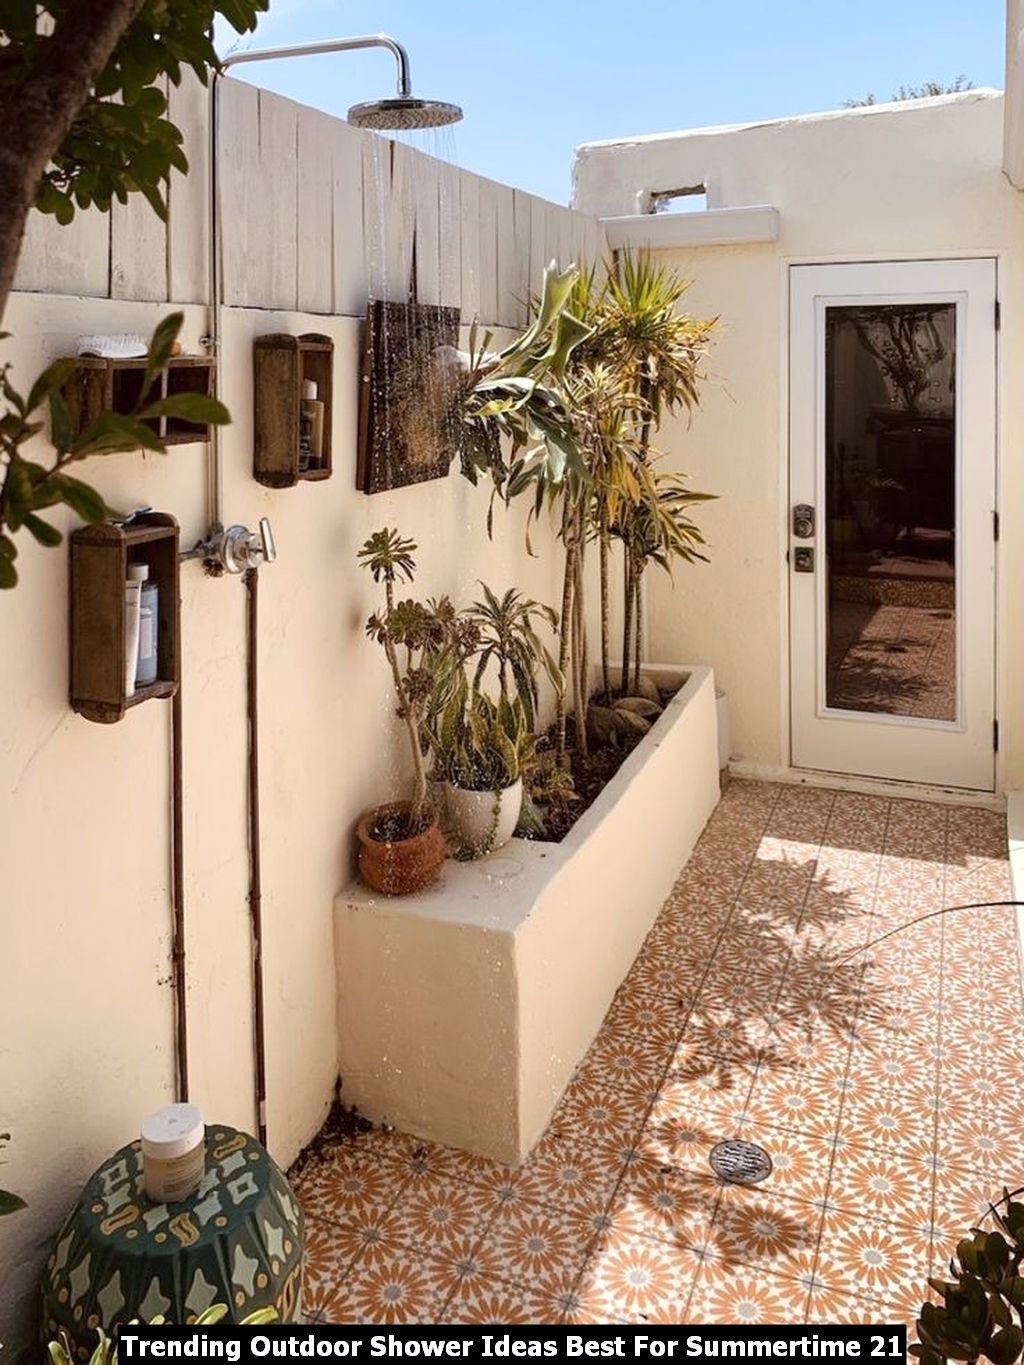 Trending Outdoor Shower Ideas Best For Summertime 21